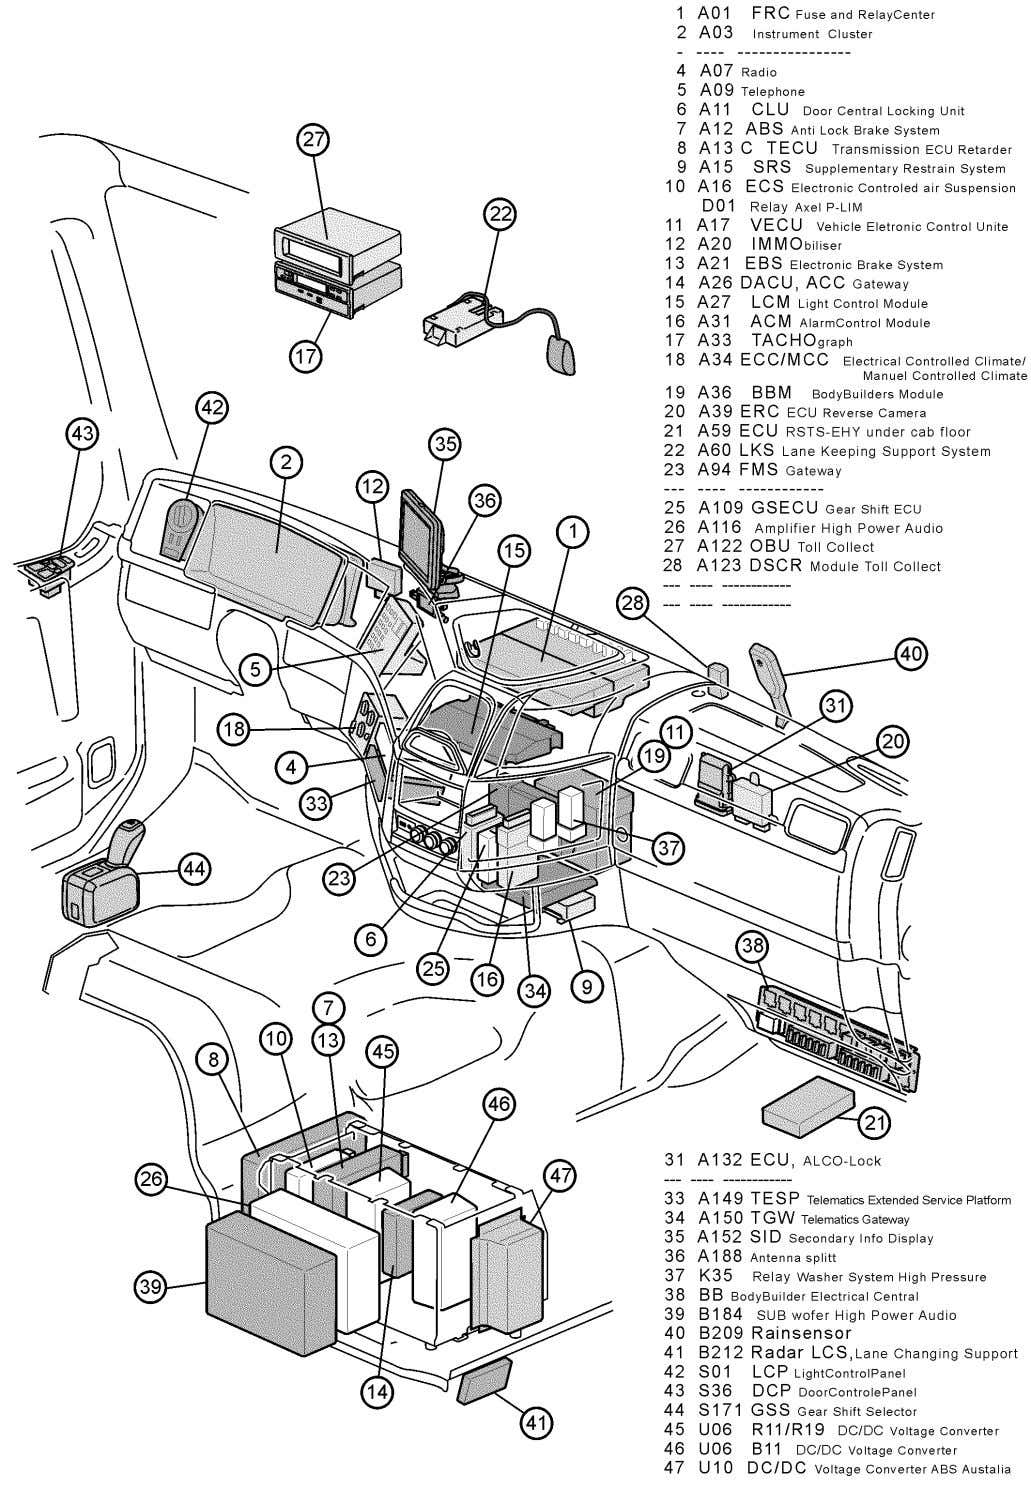 T3075970 Wiring diagram Page 131 (298)